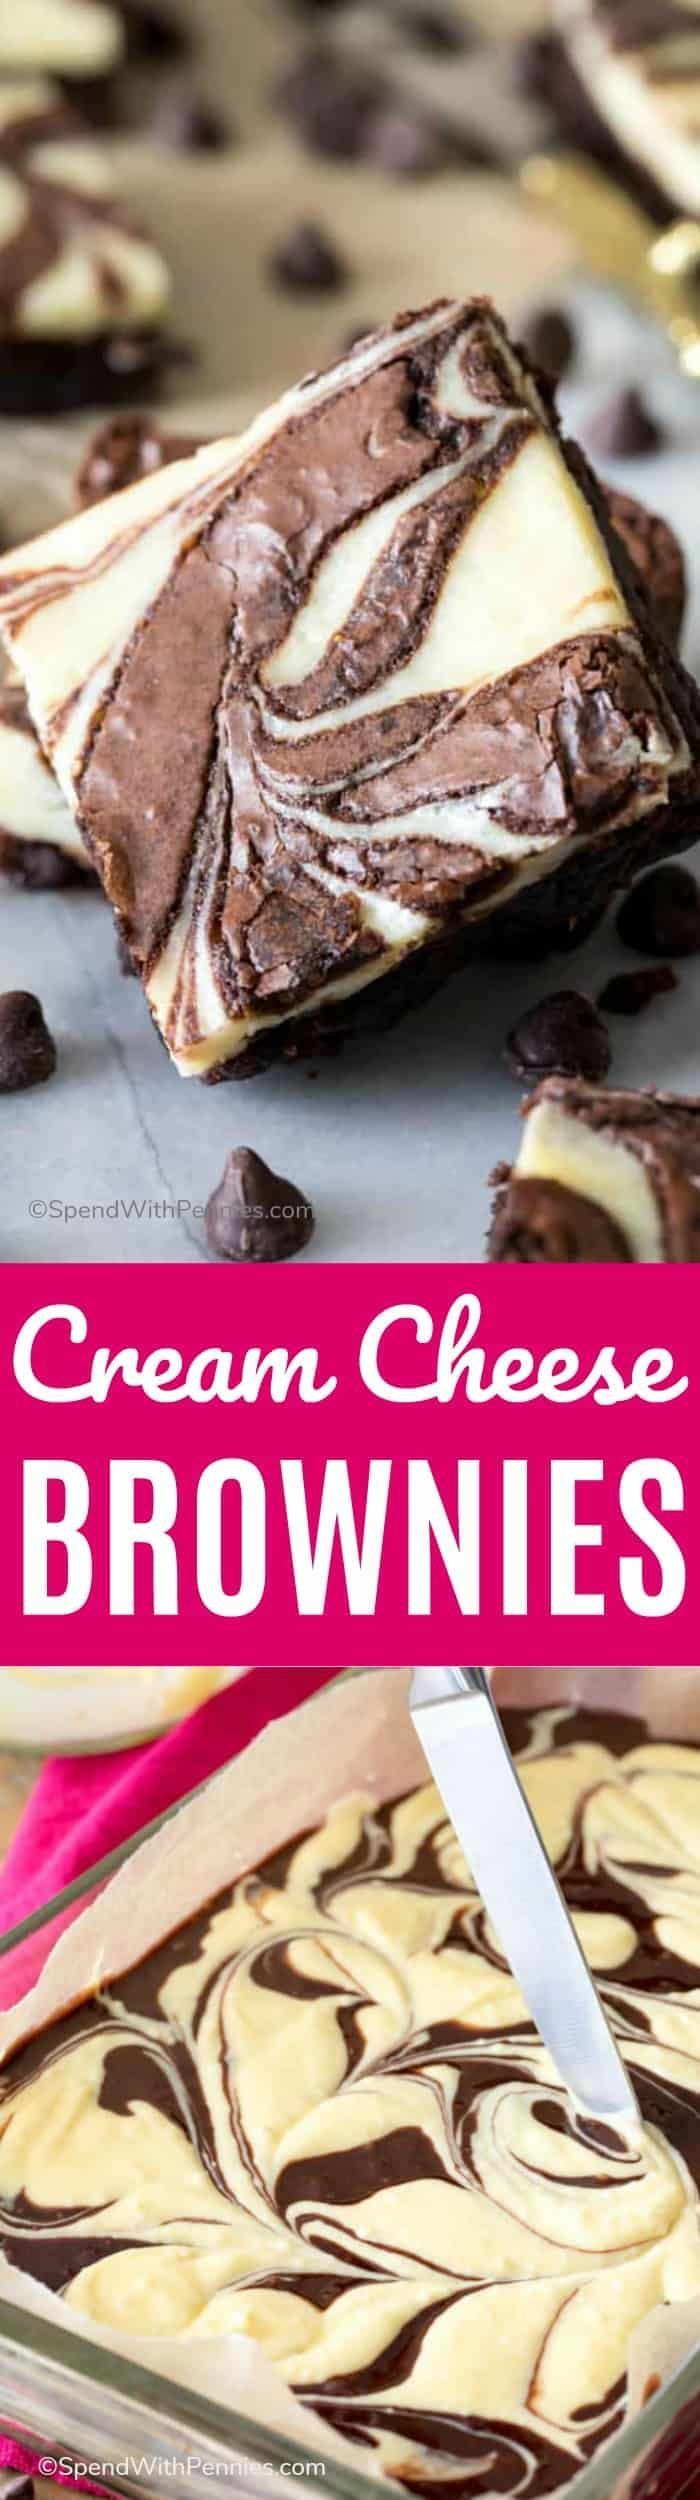 These Cream Cheese Brownies are rich, chocolatey fudgy brownies with a cheesecake ripple!  You can use the from-scratch brownie recipe included below, or this recipe will also work with your favorite box mix! #spendwithpennies #brownies #cheesecake #dessert #chocolate #recipe #easyrecipe